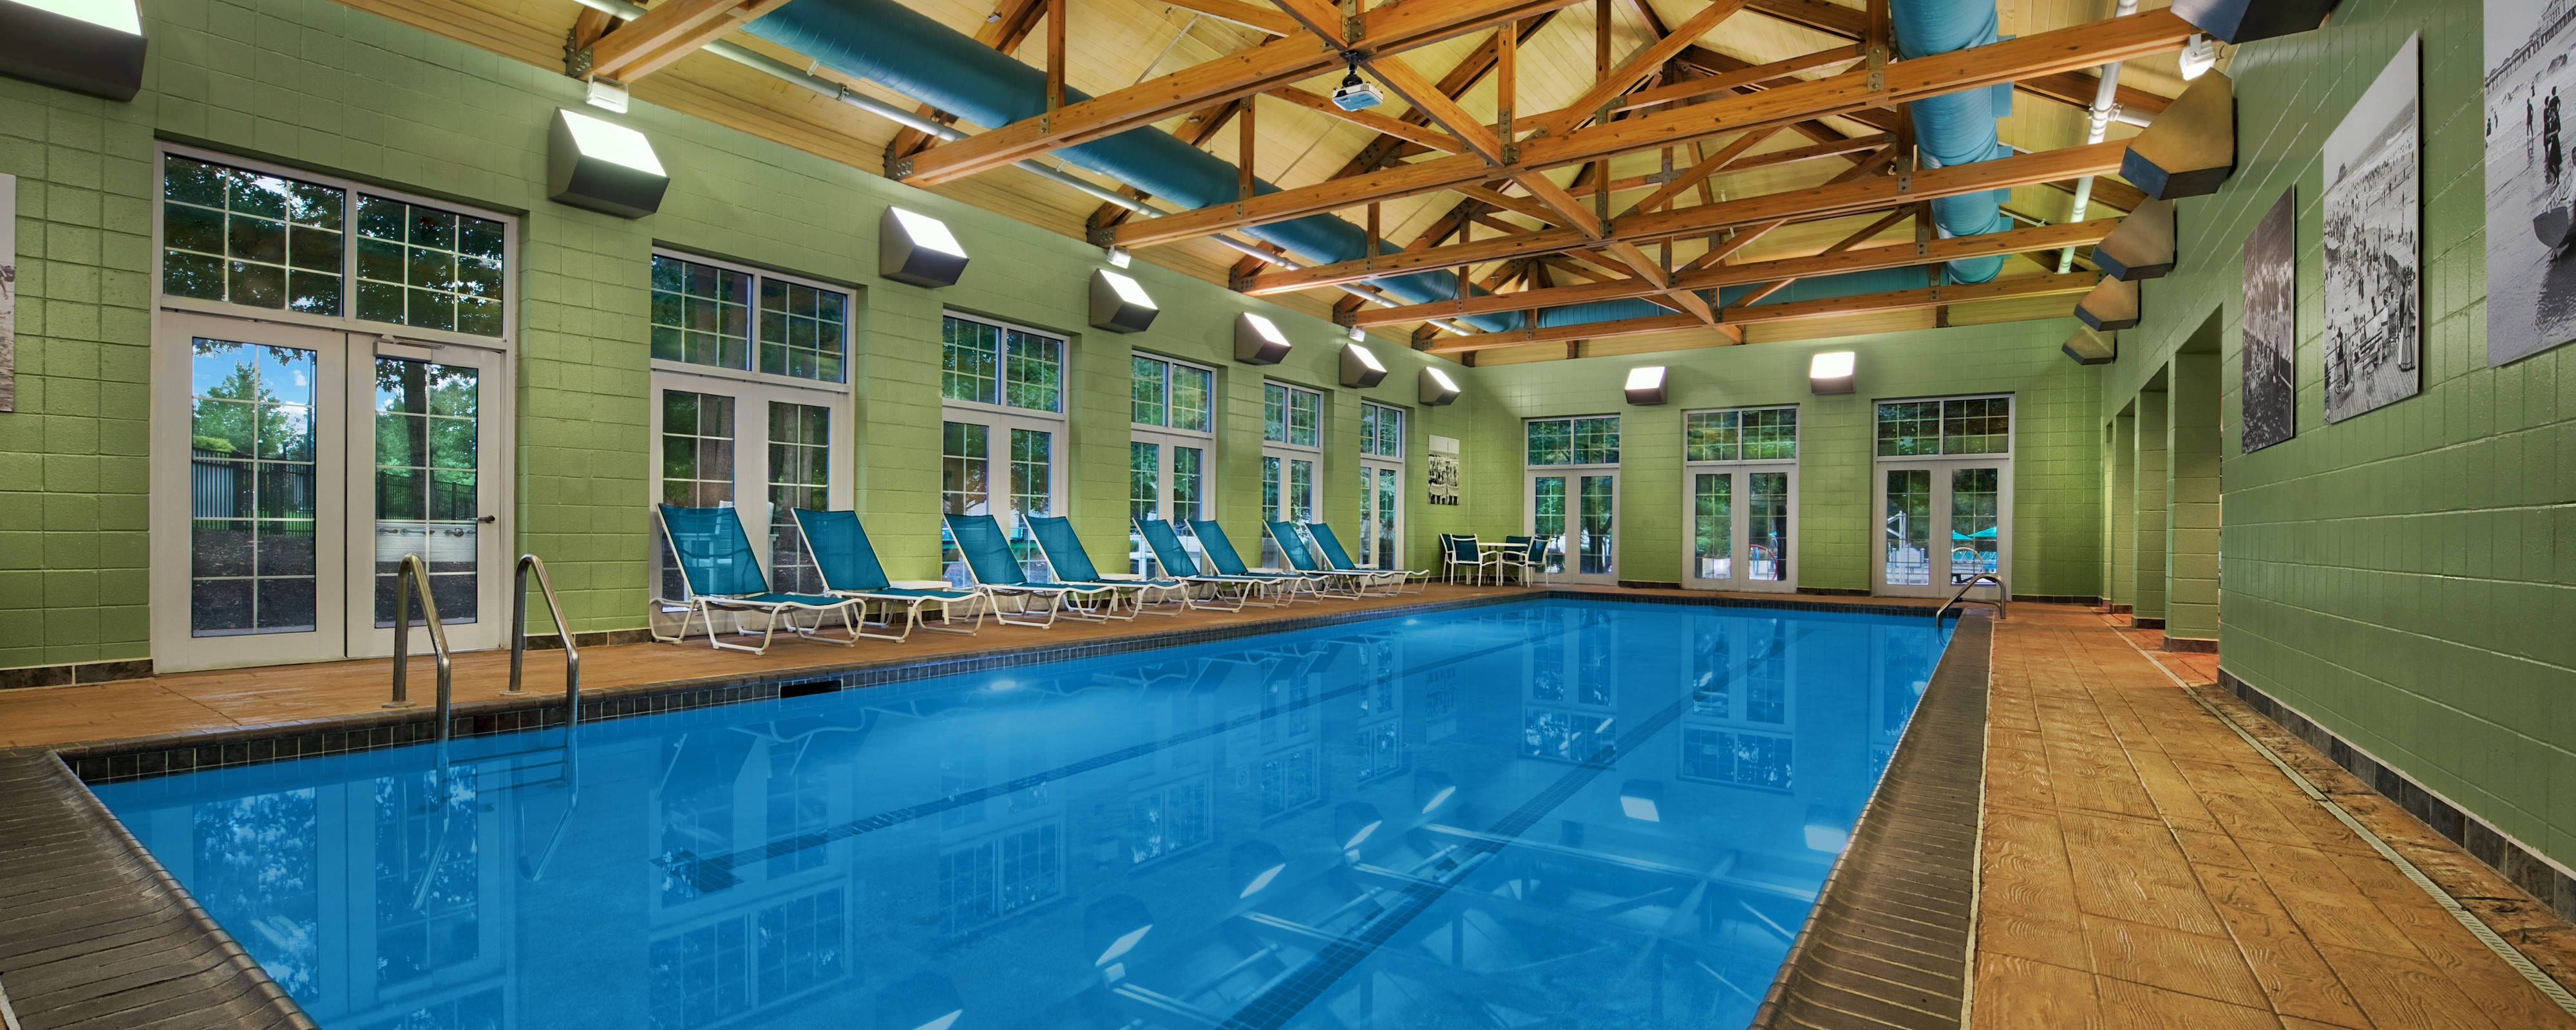 Atlantic City Resort with Pool  Fitness Center  Marriott